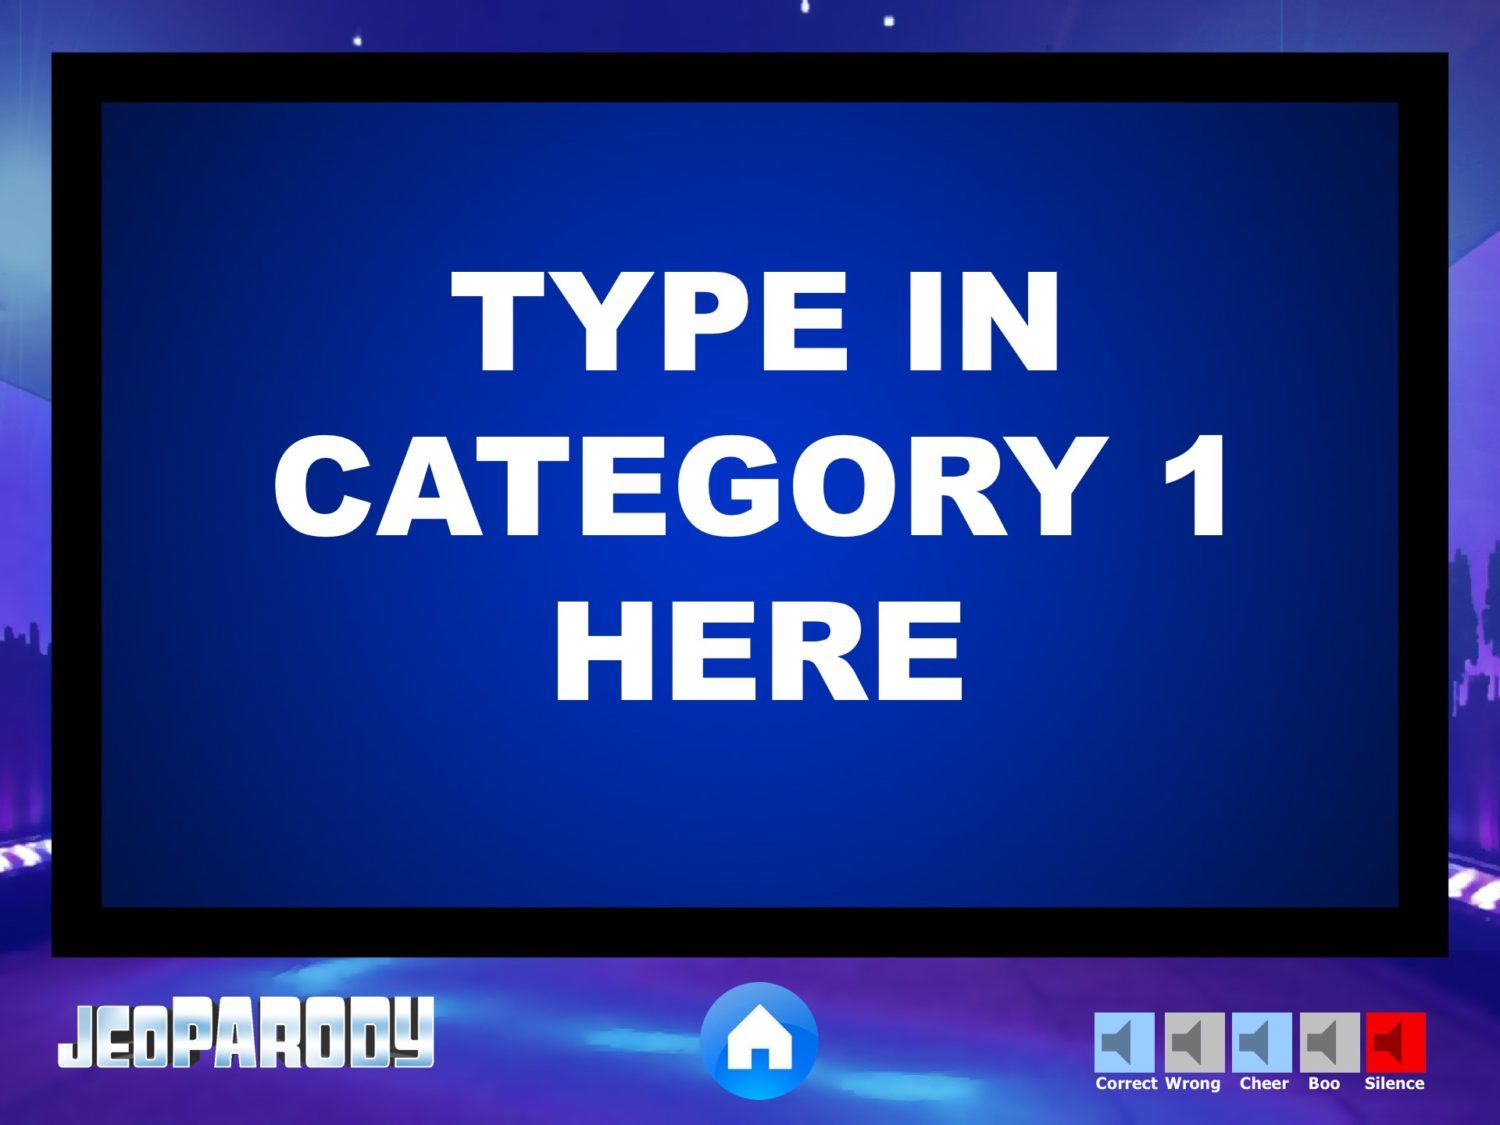 Fully Editable Jeopardy Powerpoint Template Game With Daily Doubles Final Jeopardy Theme M Jeopardy Powerpoint Template Jeopardy Template Jeopardy Powerpoint